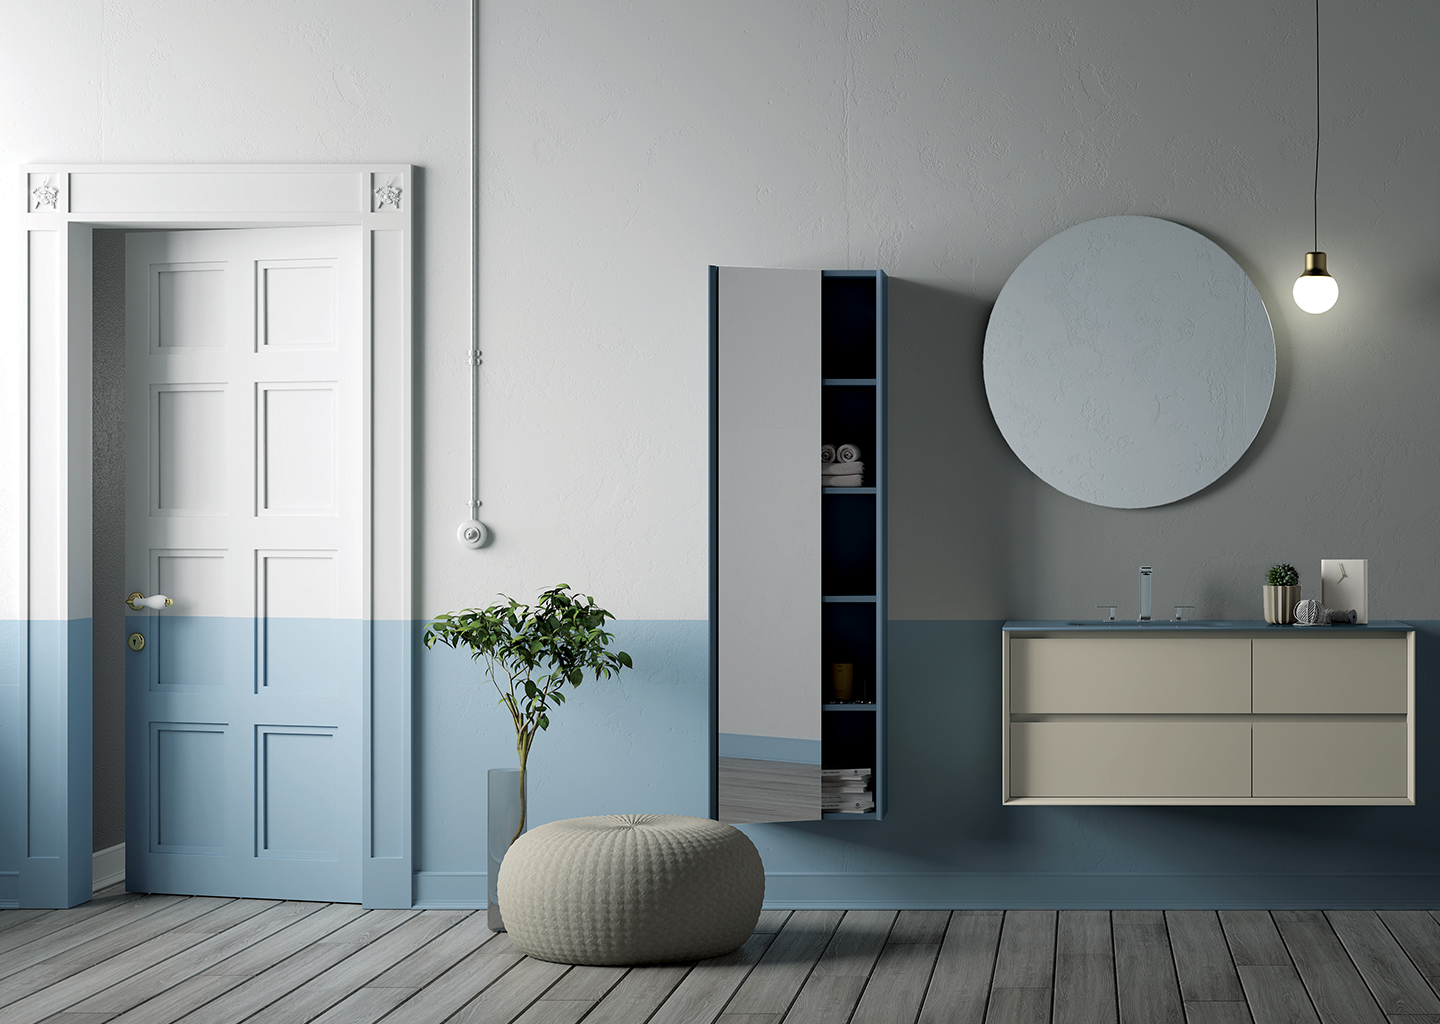 Mobili e Accessori Bagno Roma | De Angelis Materials & Design